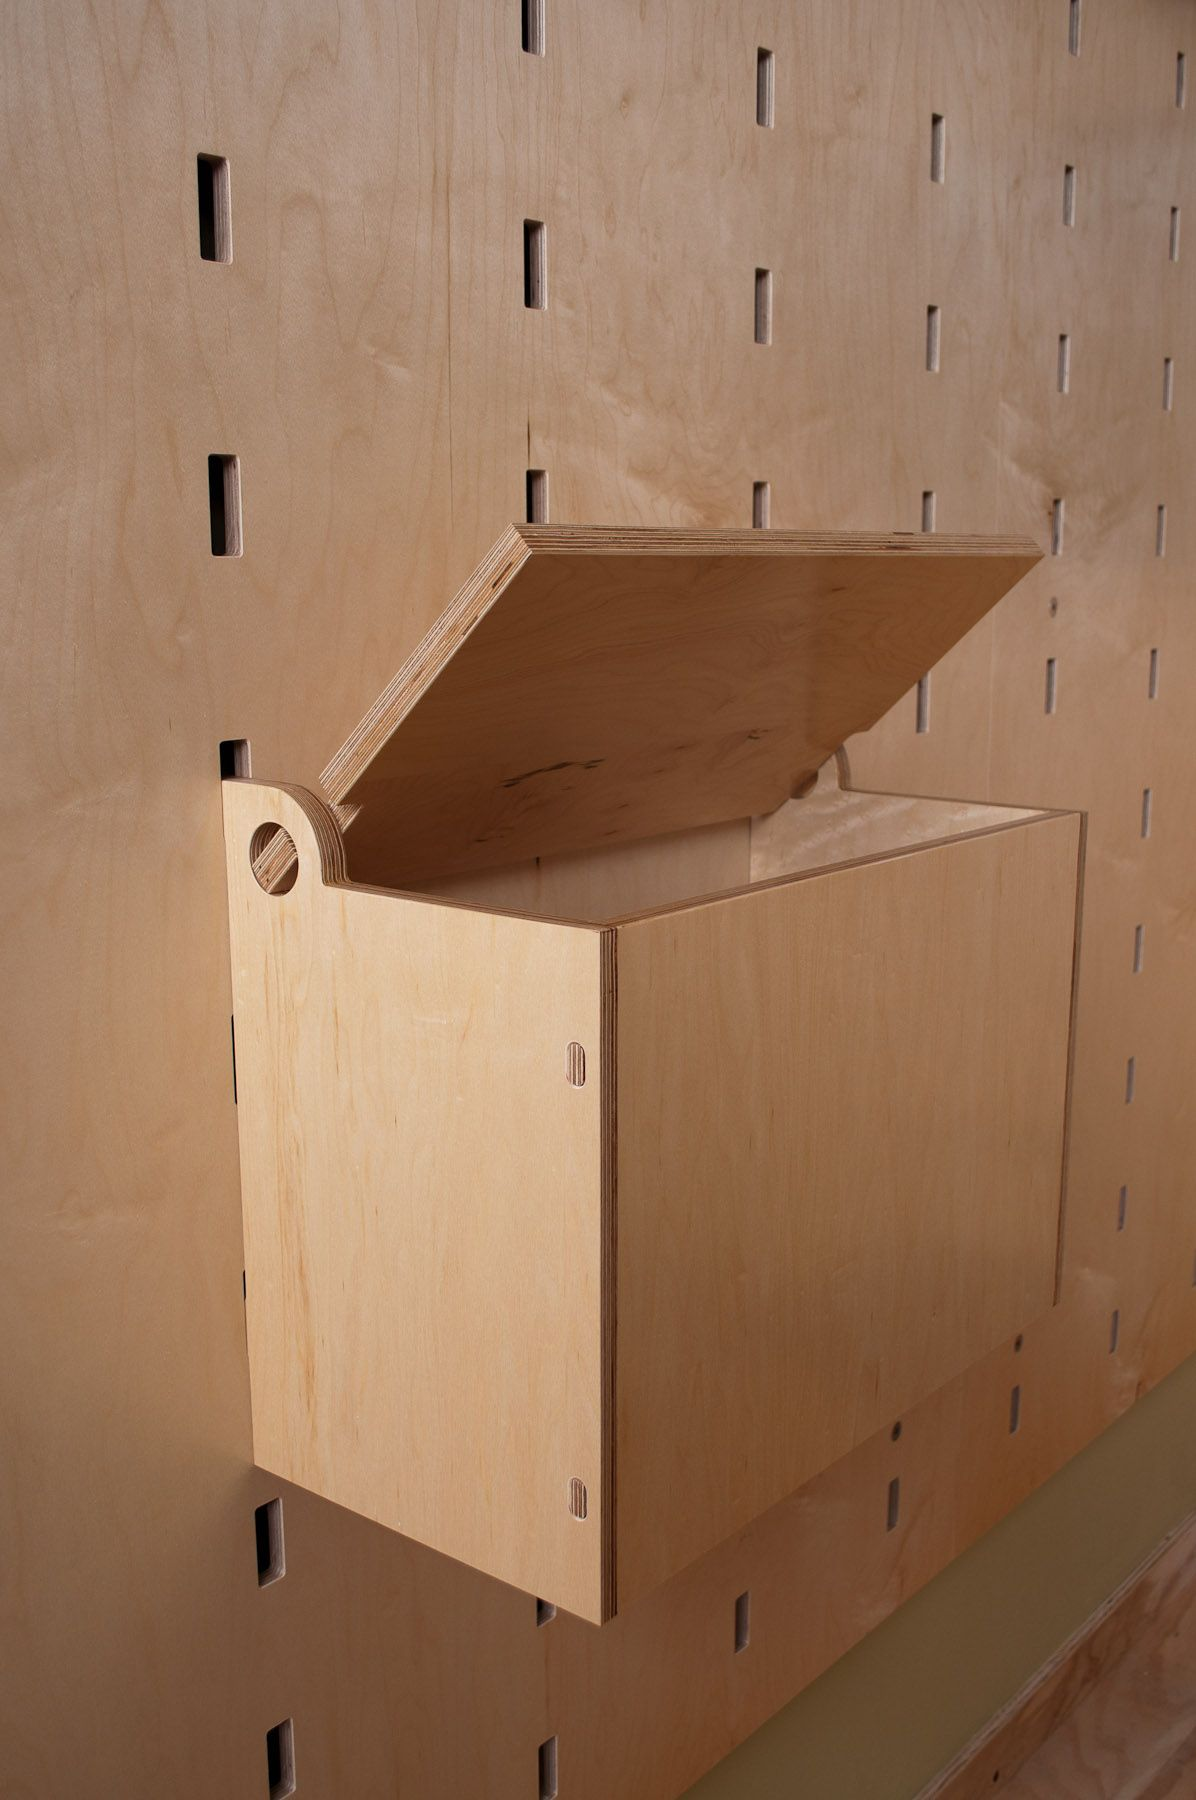 All plywood all the time | cnc | Pinterest | Plywood, CNC ...